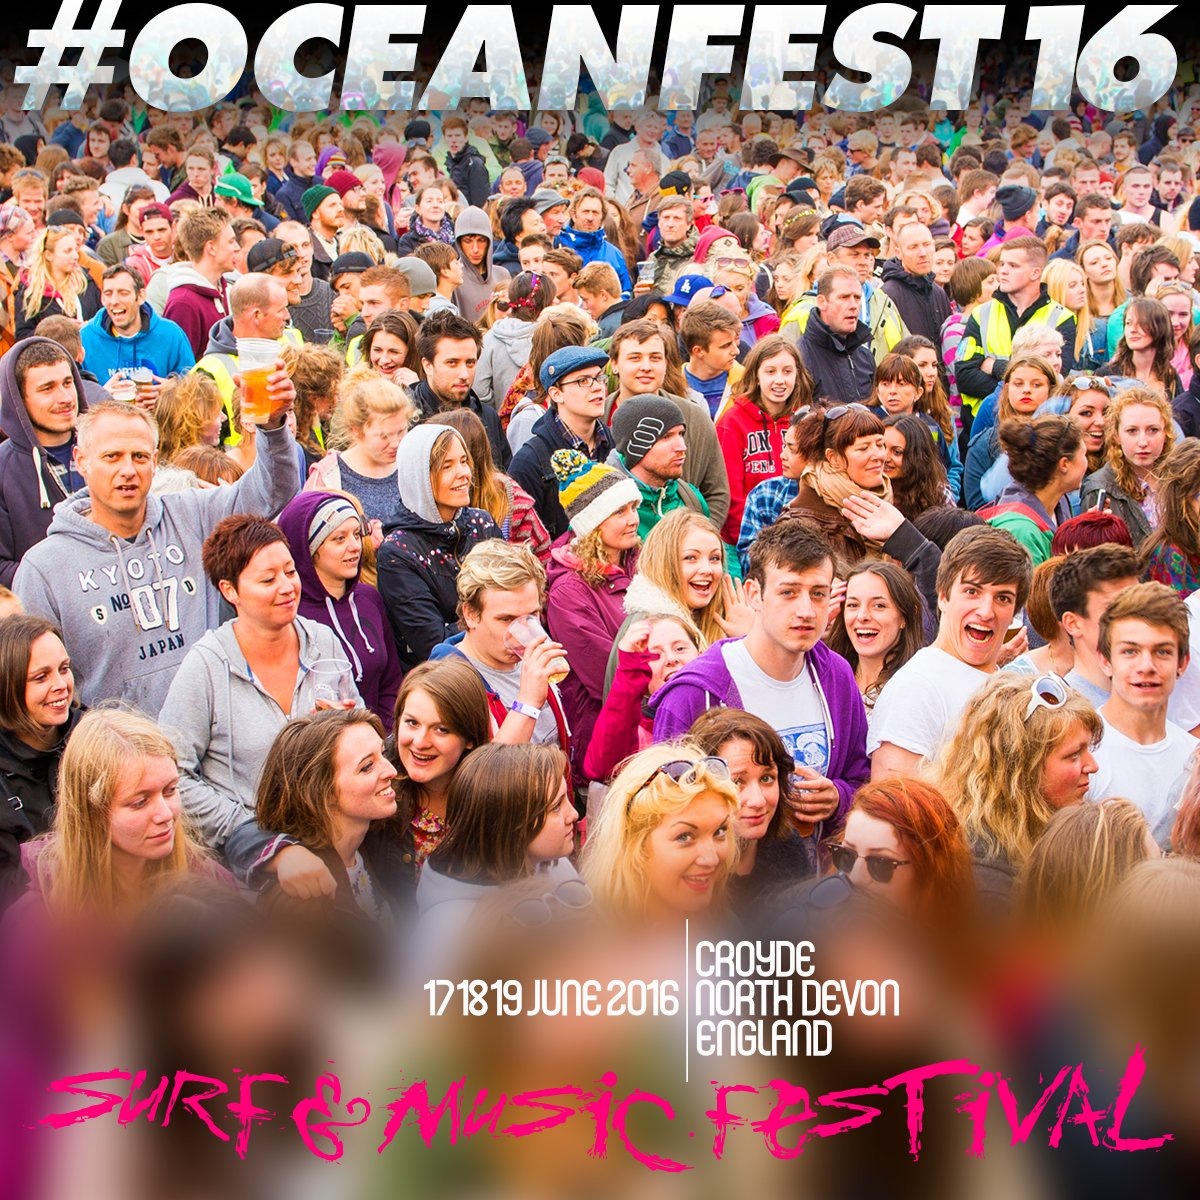 GoldCoast Oceanfest on Twitter: